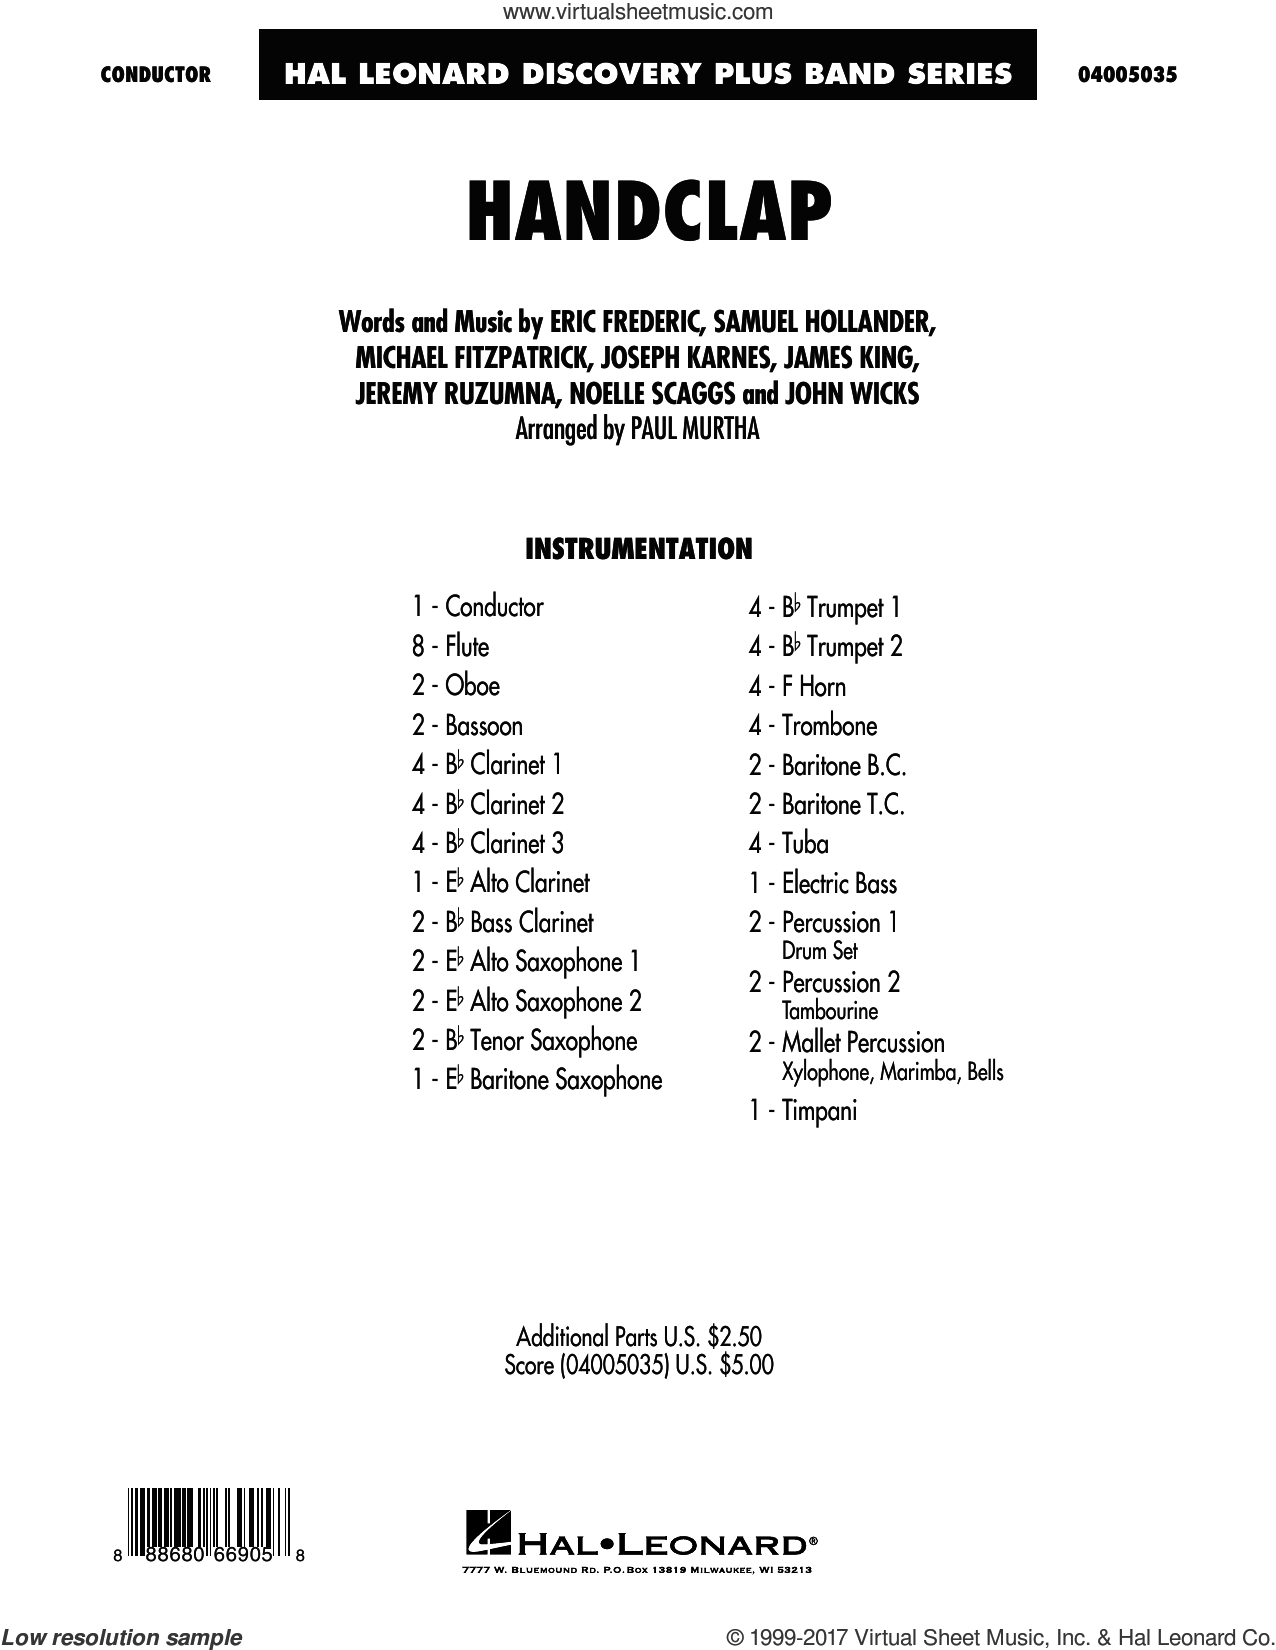 HandClap (COMPLETE) sheet music for concert band by Paul Murtha, Eric Frederic, Fitz And The Tantrums, James King, Jeremy Ruzumna, John Wicks, Joseph Karnes, Michael Fitzpatrick, Noelle Scaggs and Sam Hollander, intermediate skill level